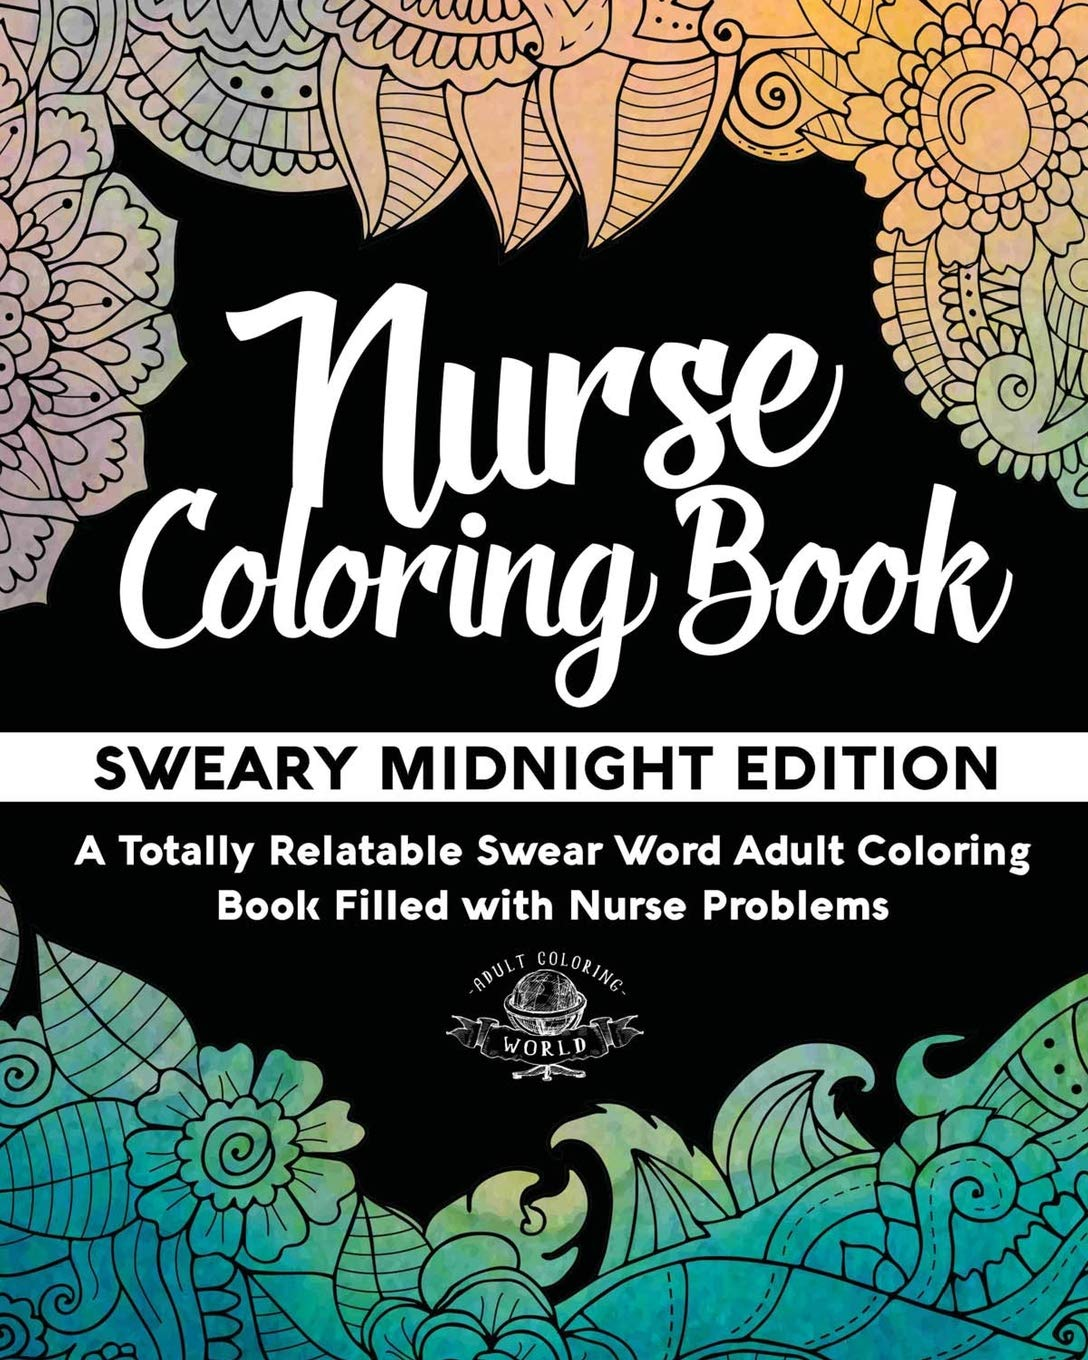 Nurse Coloring Book: Sweary Midnight Edition - A Totally Relatable Swear Word Adult Coloring Book Filled with Nurse Problems (Coloring Book Gift Ideas) (Volume 2) ebook